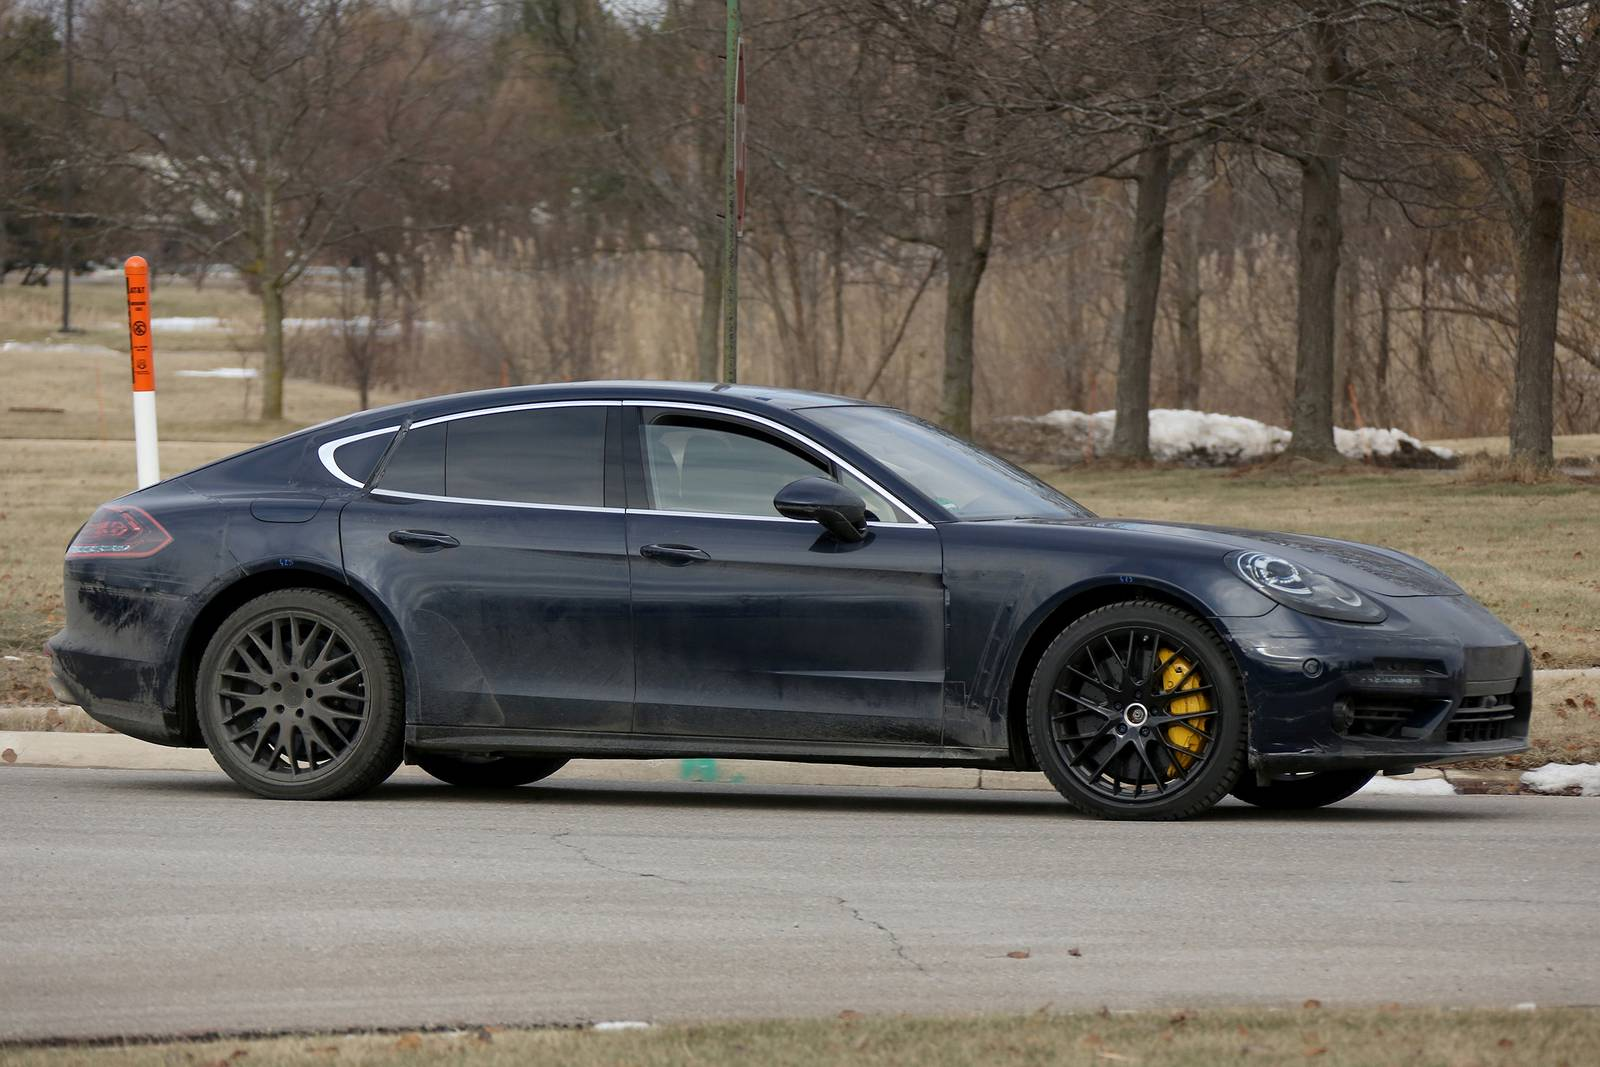 2017 Porsche Panamera First Interior Spy Shots - GTspirit